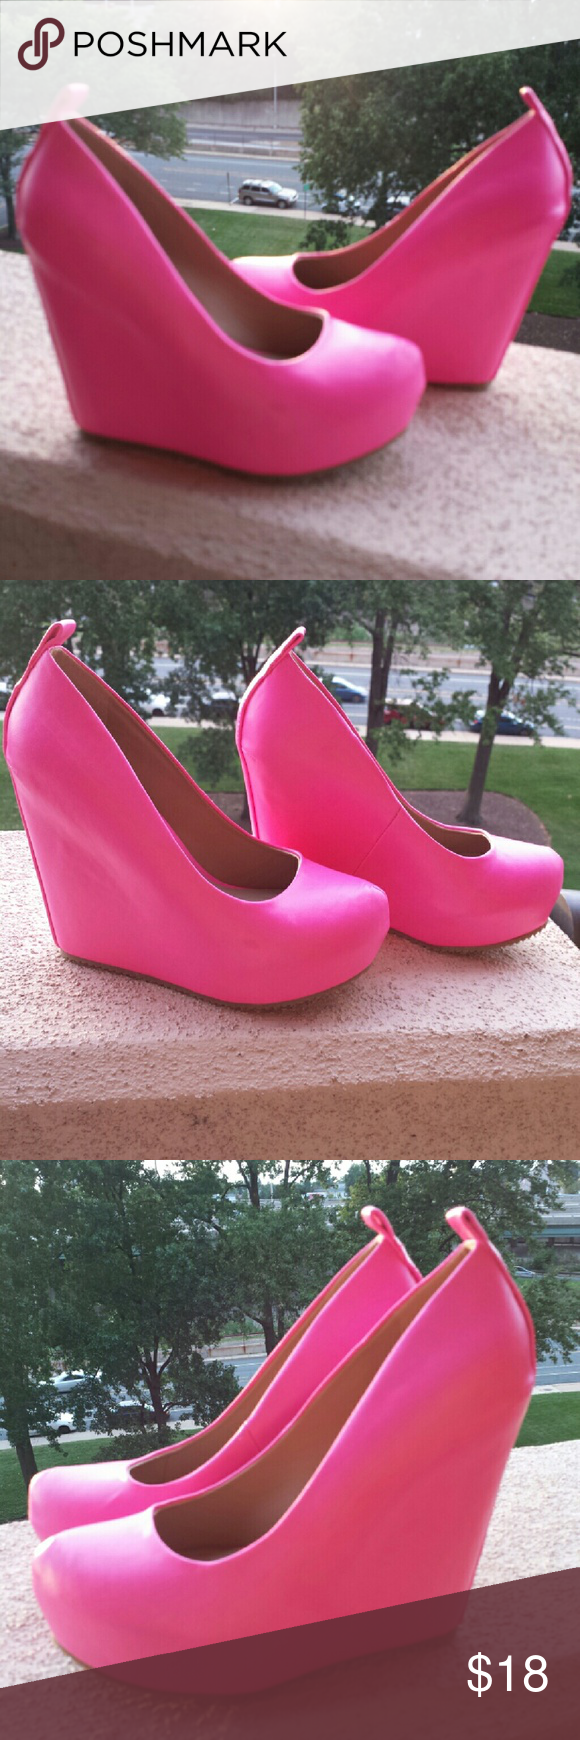 a7444dbb2c1 Selling this Hot pink platform wedges by Elle on Poshmark! My username is   dibarbx.  shopmycloset  poshmark  fashion  shopping  style  forsale  Elle   Shoes